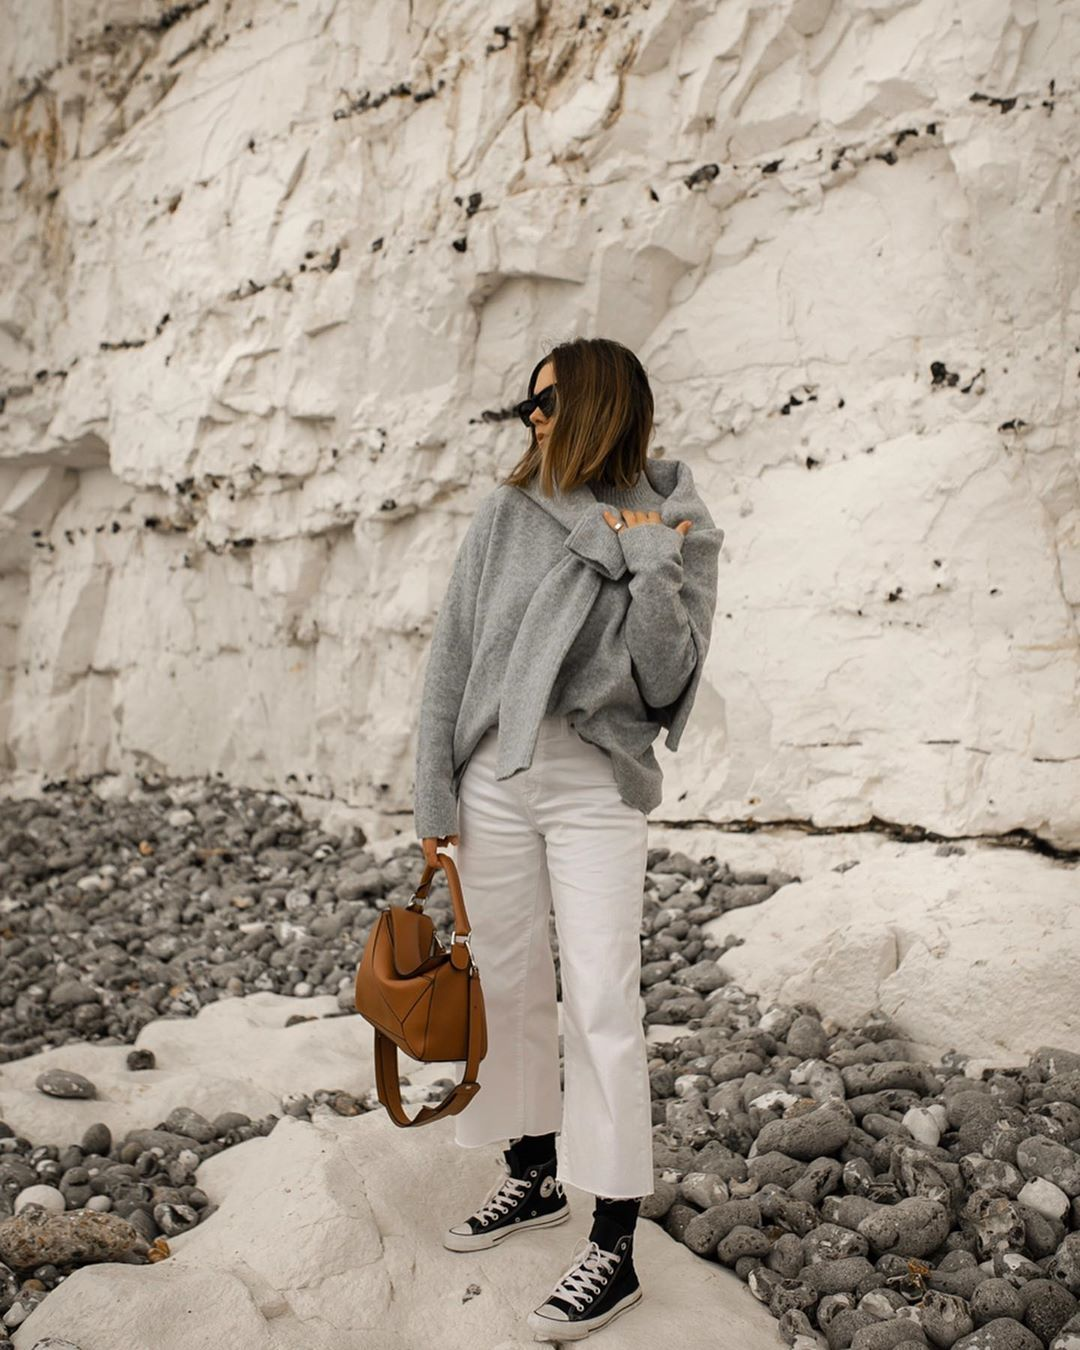 hannah-crosskey-white-jeans-outfit-instagram